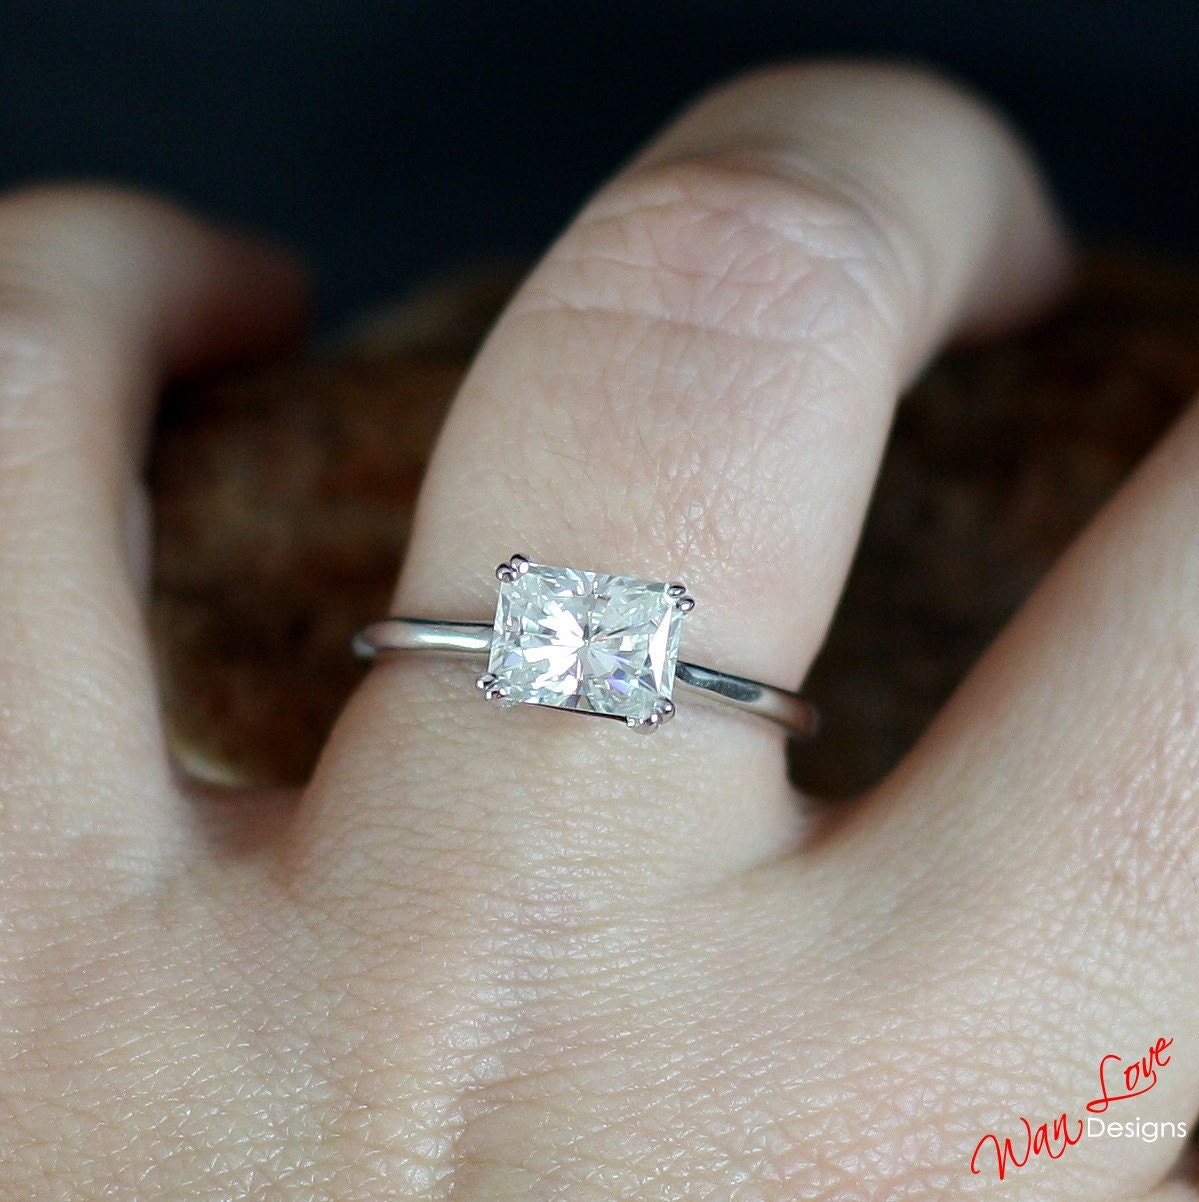 band deco retro ring eternity vintage engagement diamond carat white art oval gold bands rings full moissanite